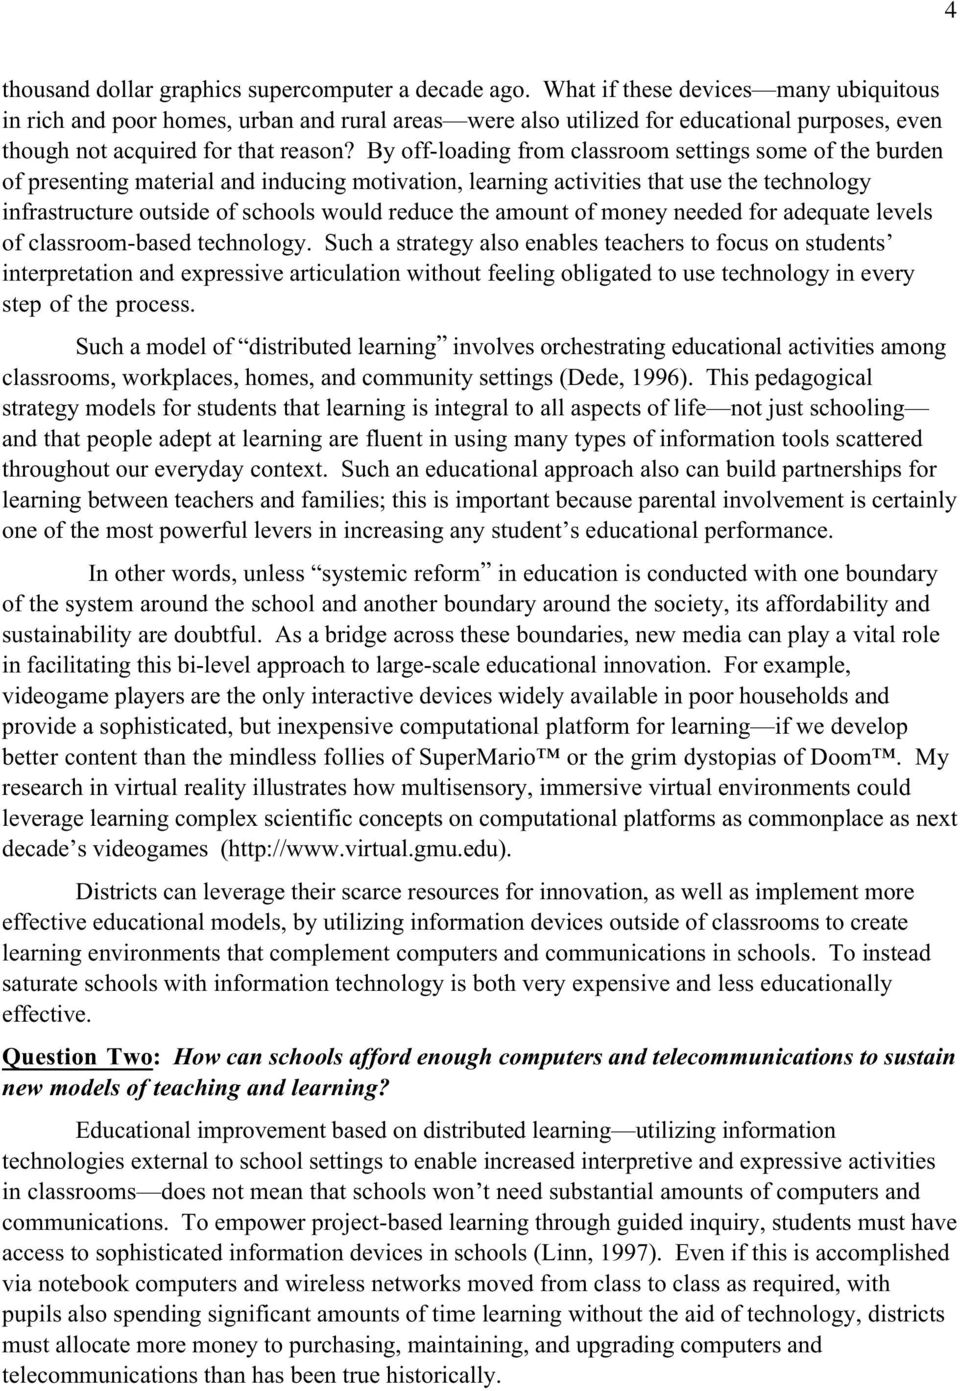 By off-loading from classroom settings some of the burden of presenting material and inducing motivation, learning activities that use the technology infrastructure outside of schools would reduce